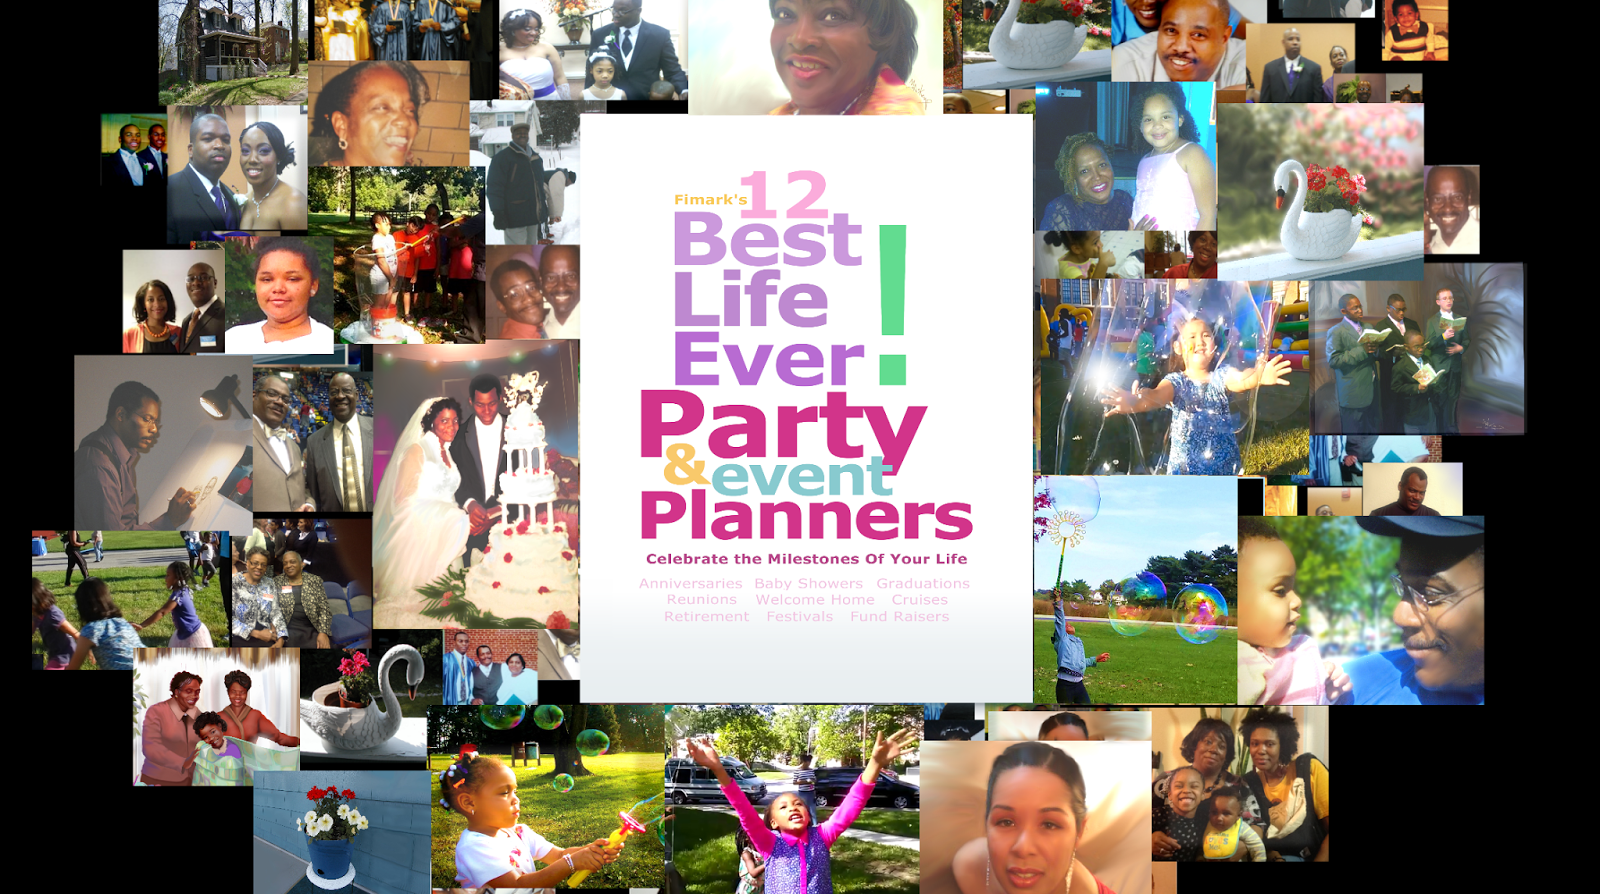 Family Reunion Planning Guides Apps And Books New Party